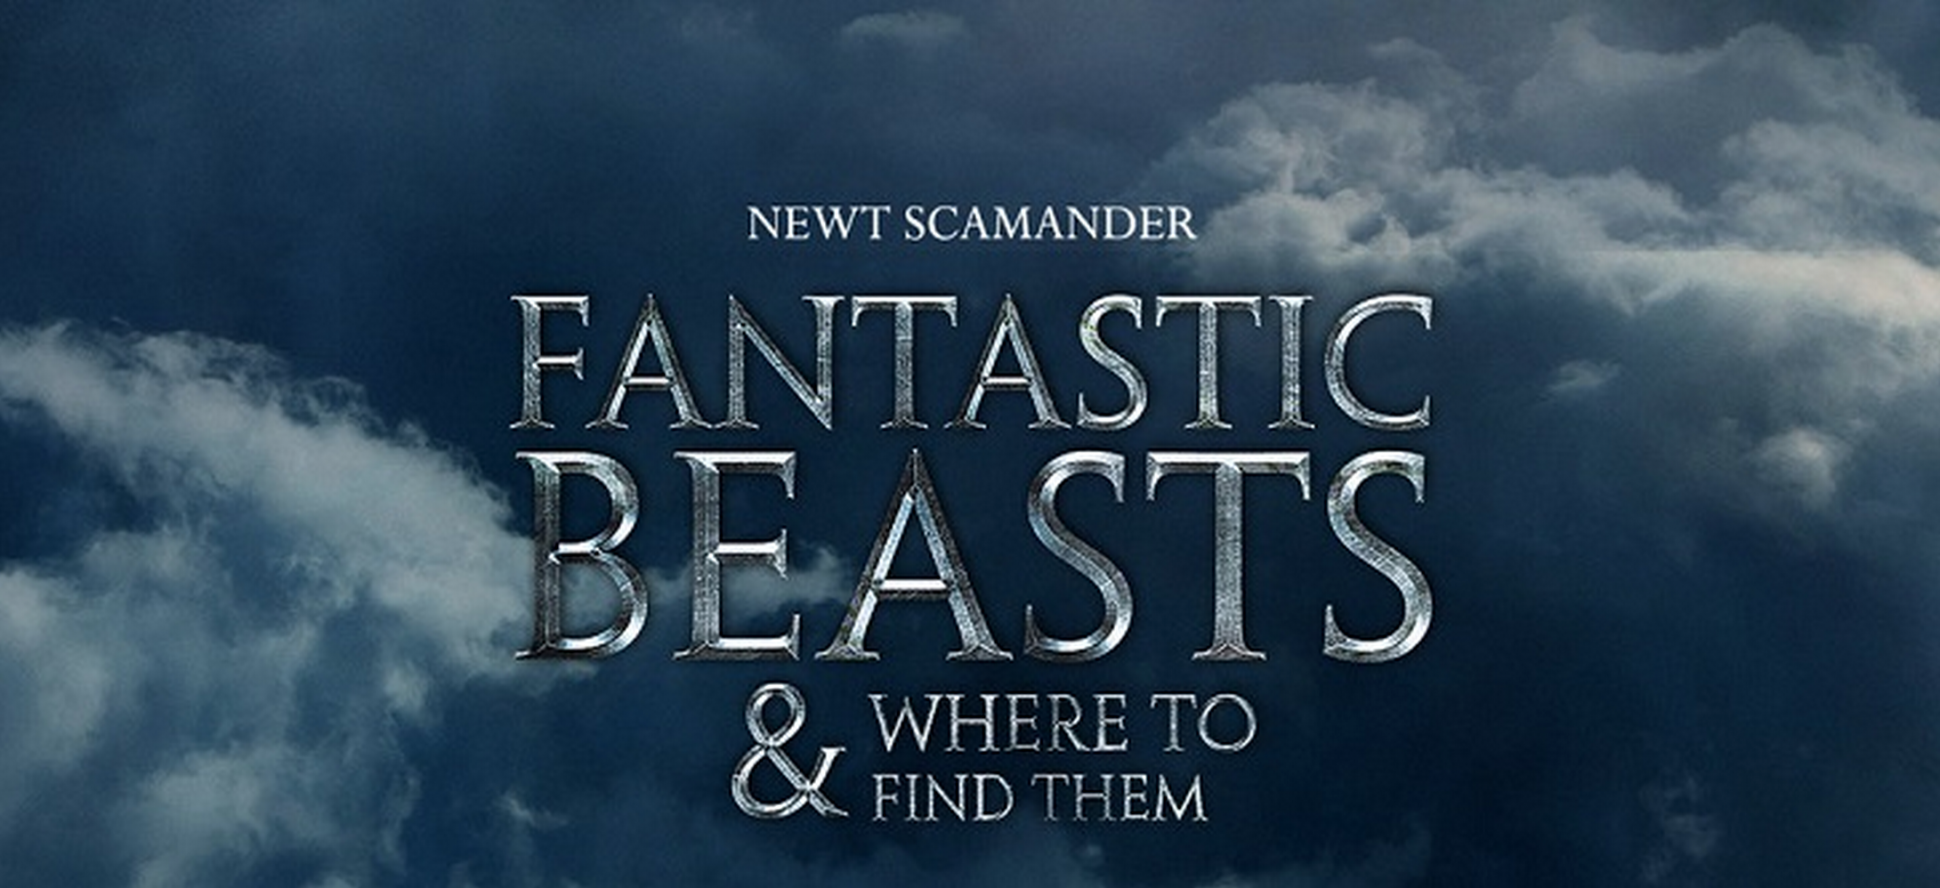 Download Film Fantastic Beasts Find 2016